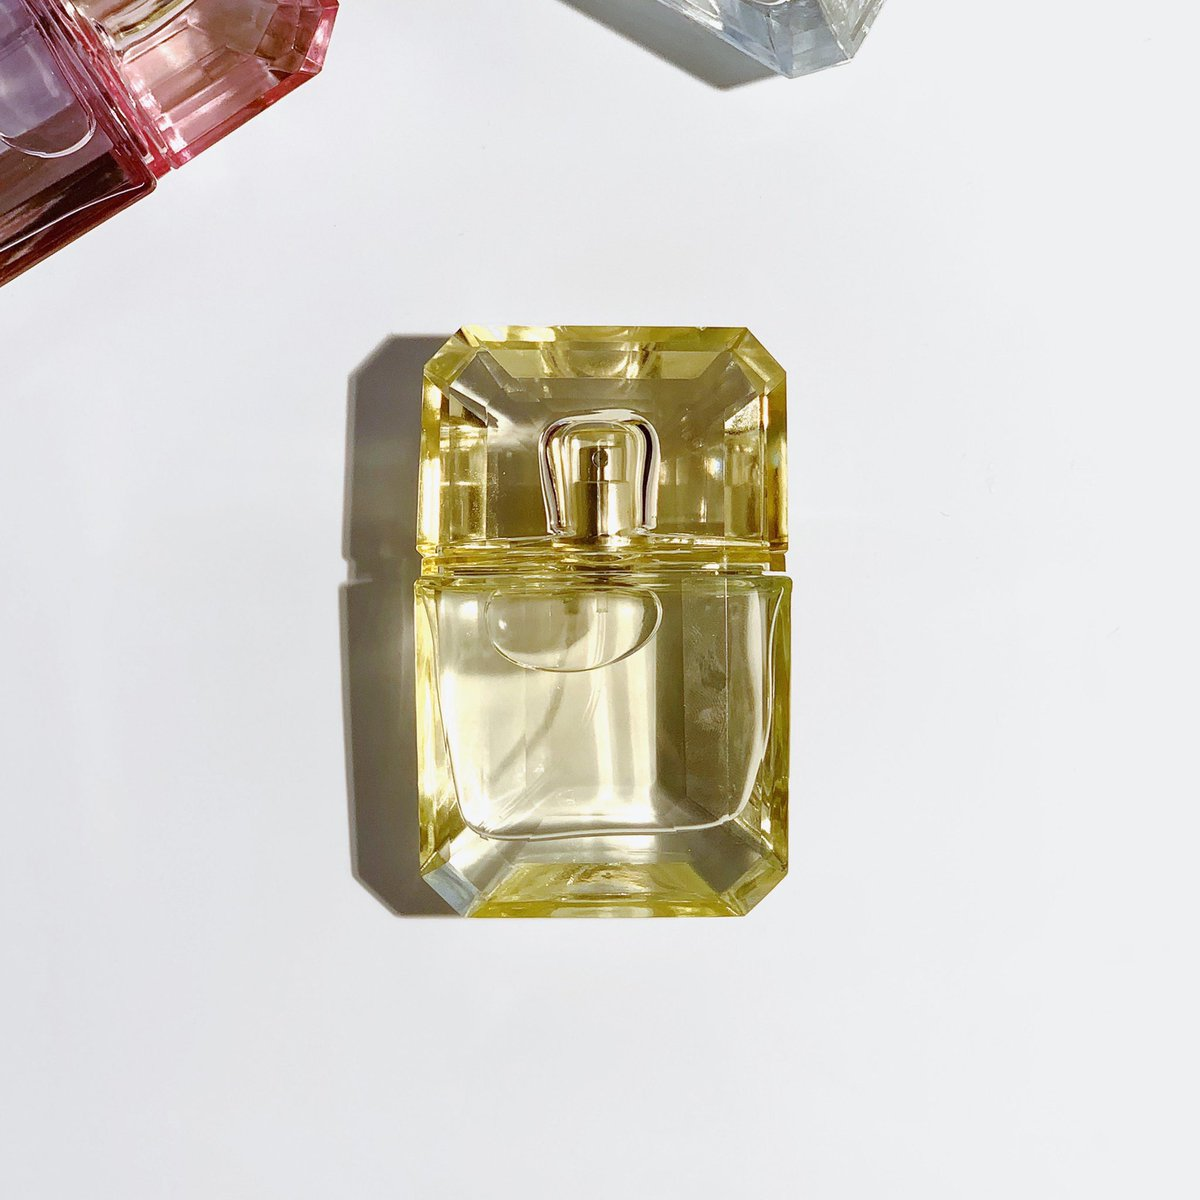 KKW Fragrance Diamonds by Kourtney (Yellow) is comprised of yellow floral bouquet notes with jasmine, iris and magnolia. Shop this fragrance for $40 now at  http://KKWFRAGRANCE.COM   or in-stores at @ultabeauty . #KKWDIAMONDS